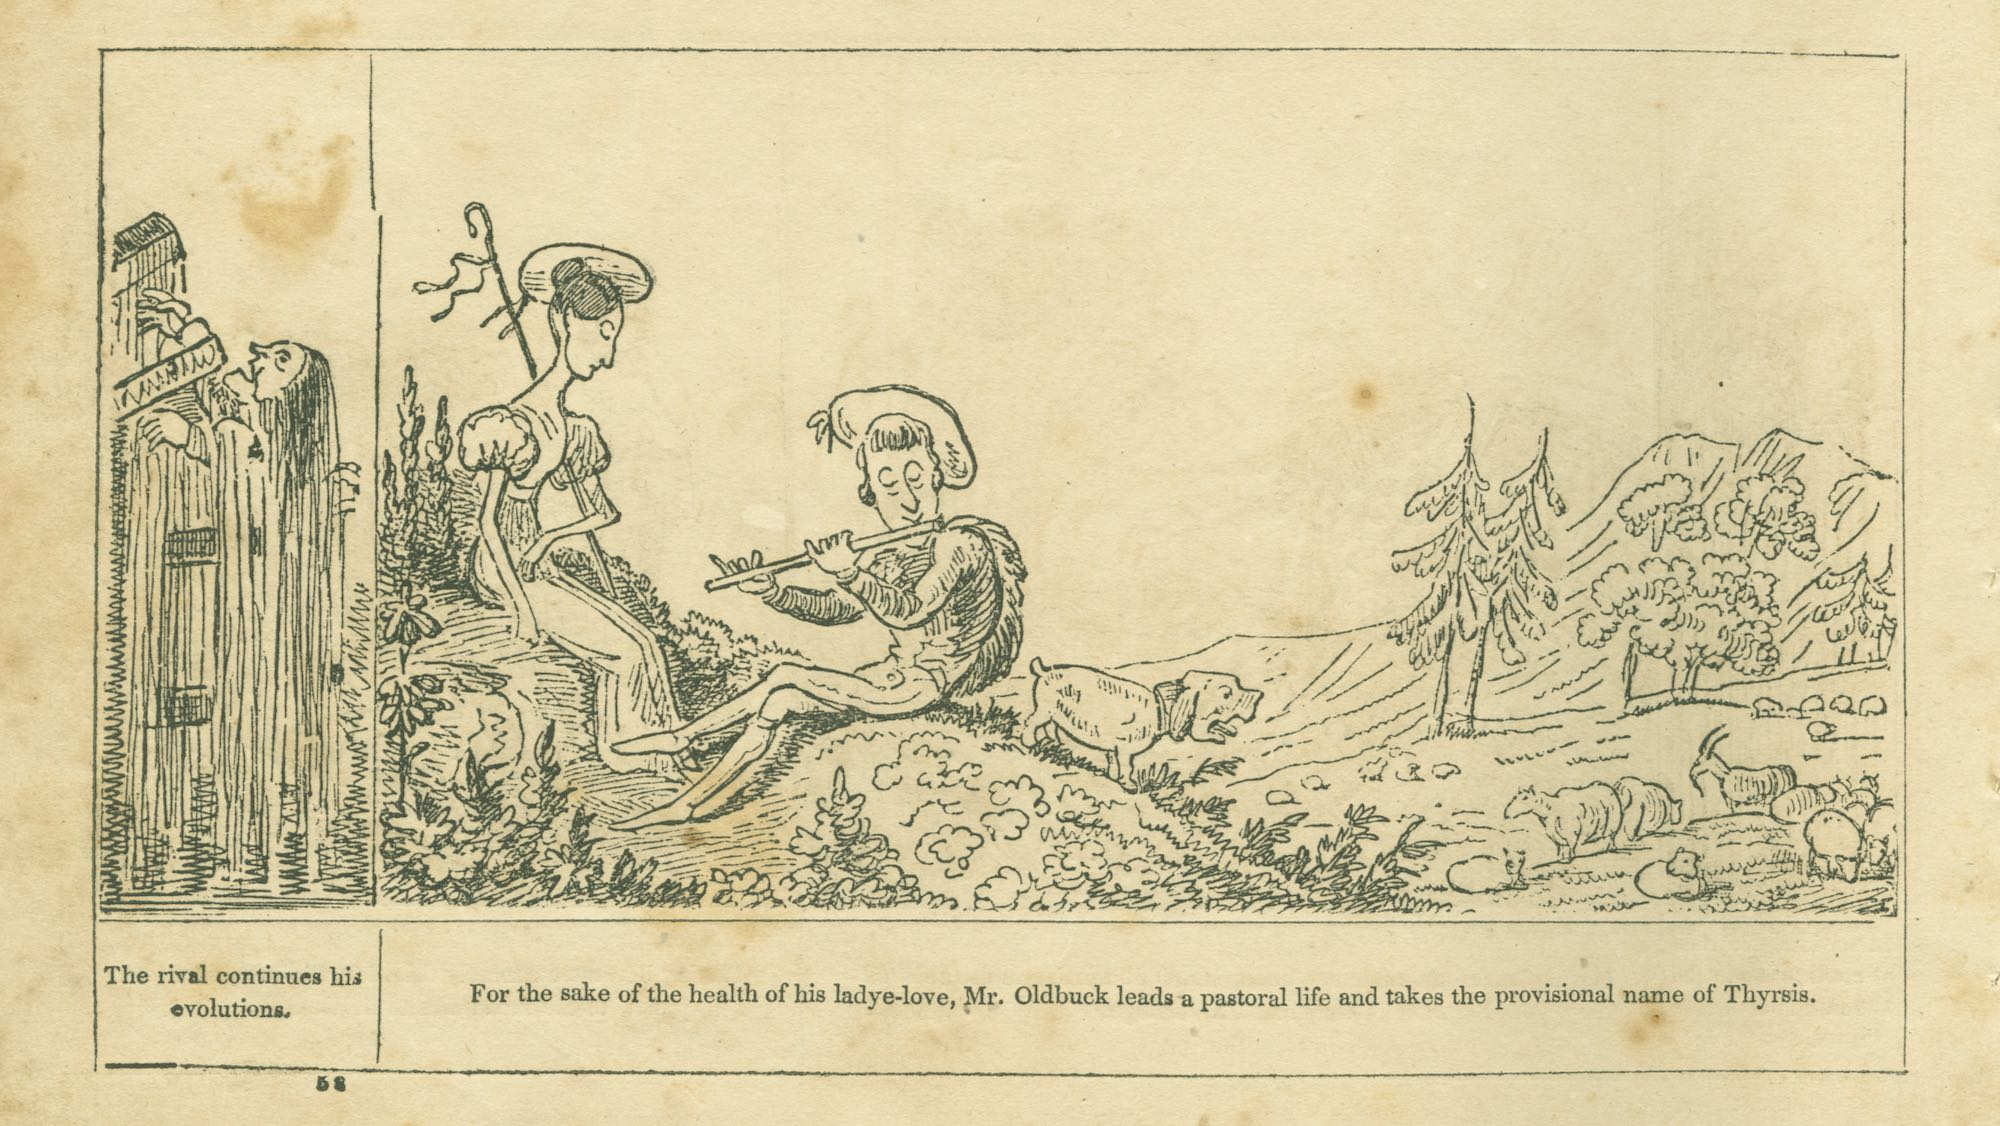 cartoon of a man playing a flute next to a woman